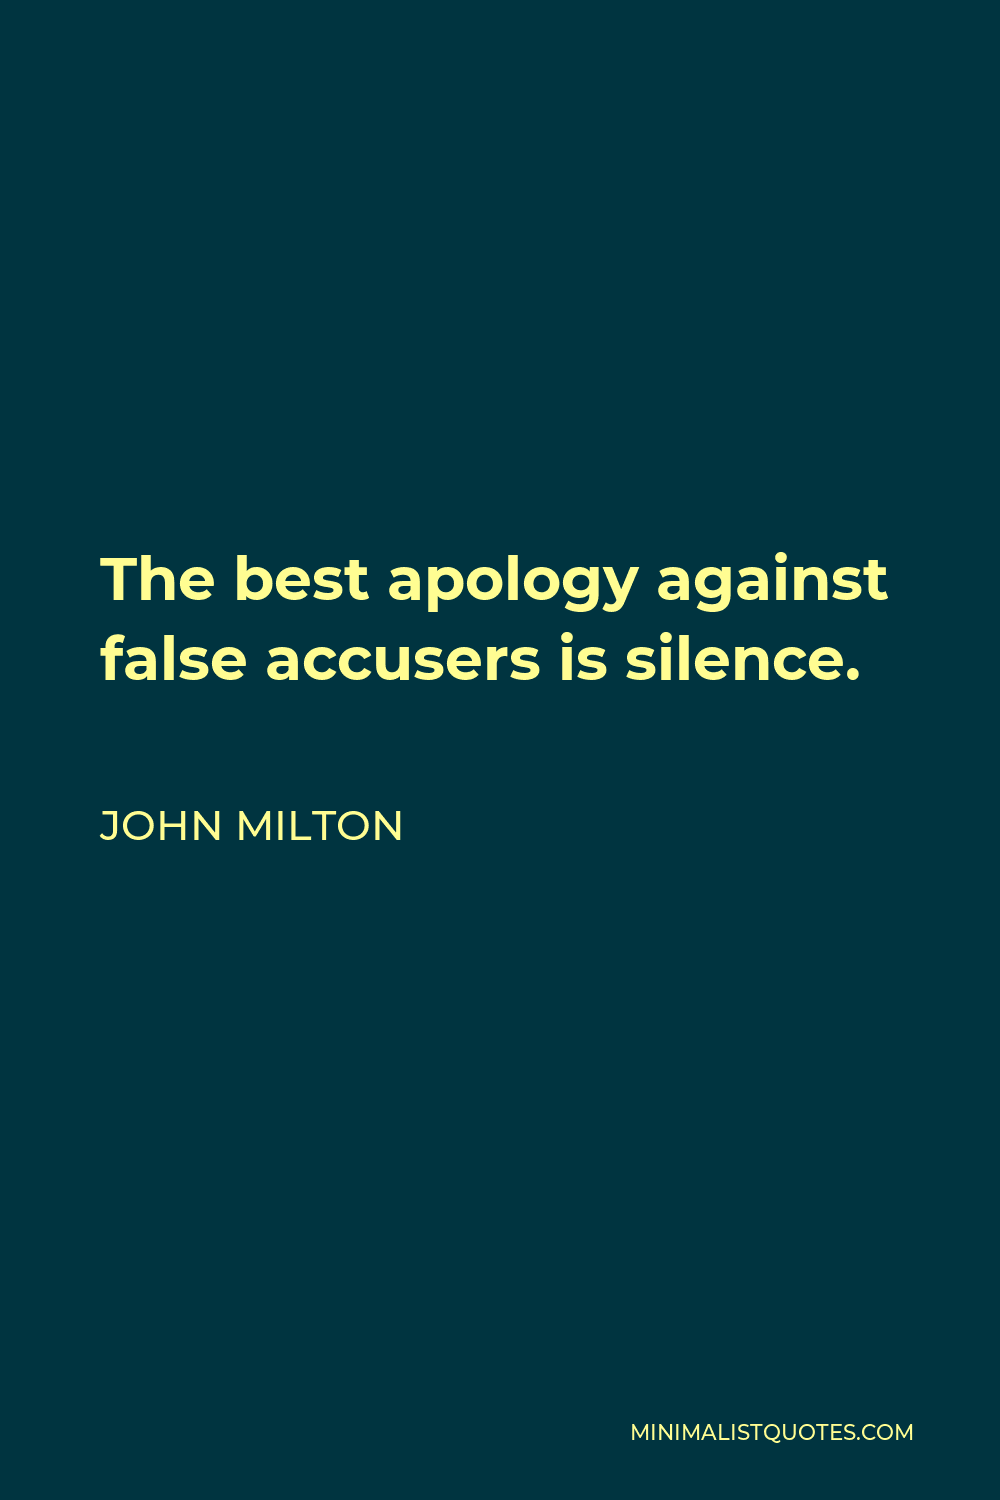 John Milton Quote - The best apology against false accusers is silence.